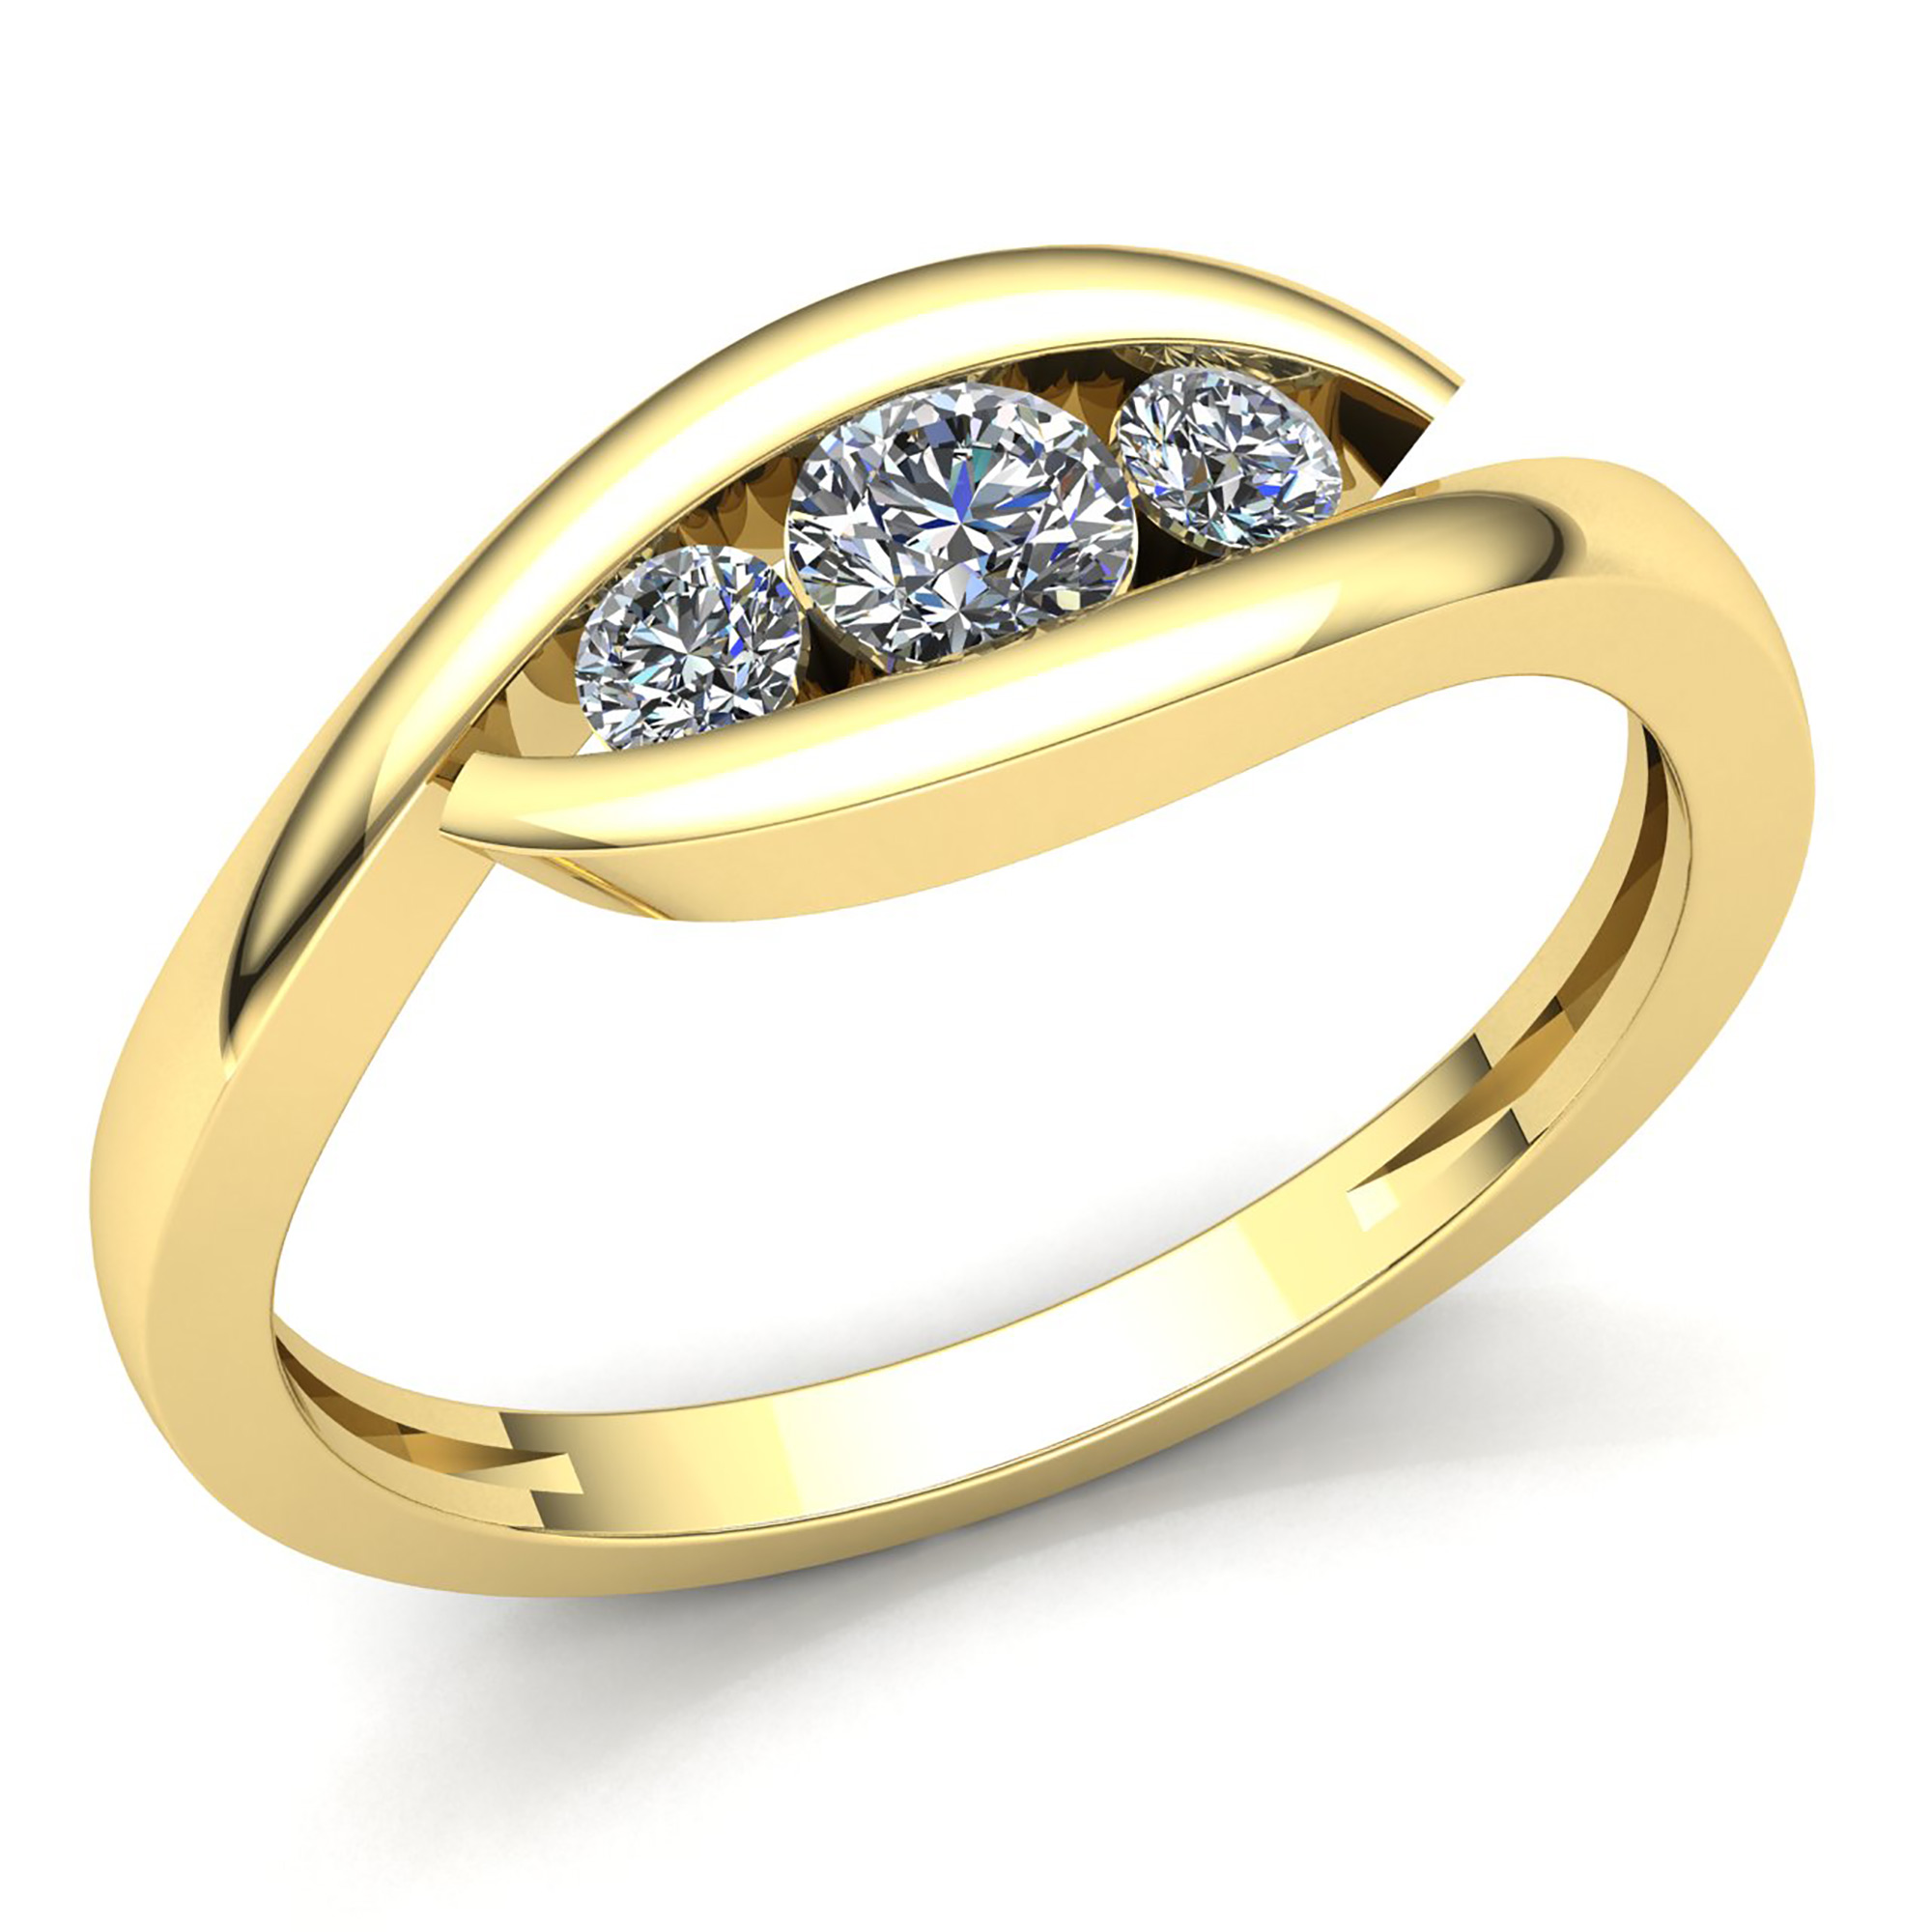 rings attachment gold photo of wedding intended hills ladies for gallery and photos landstroms from viewing bands black coleman band